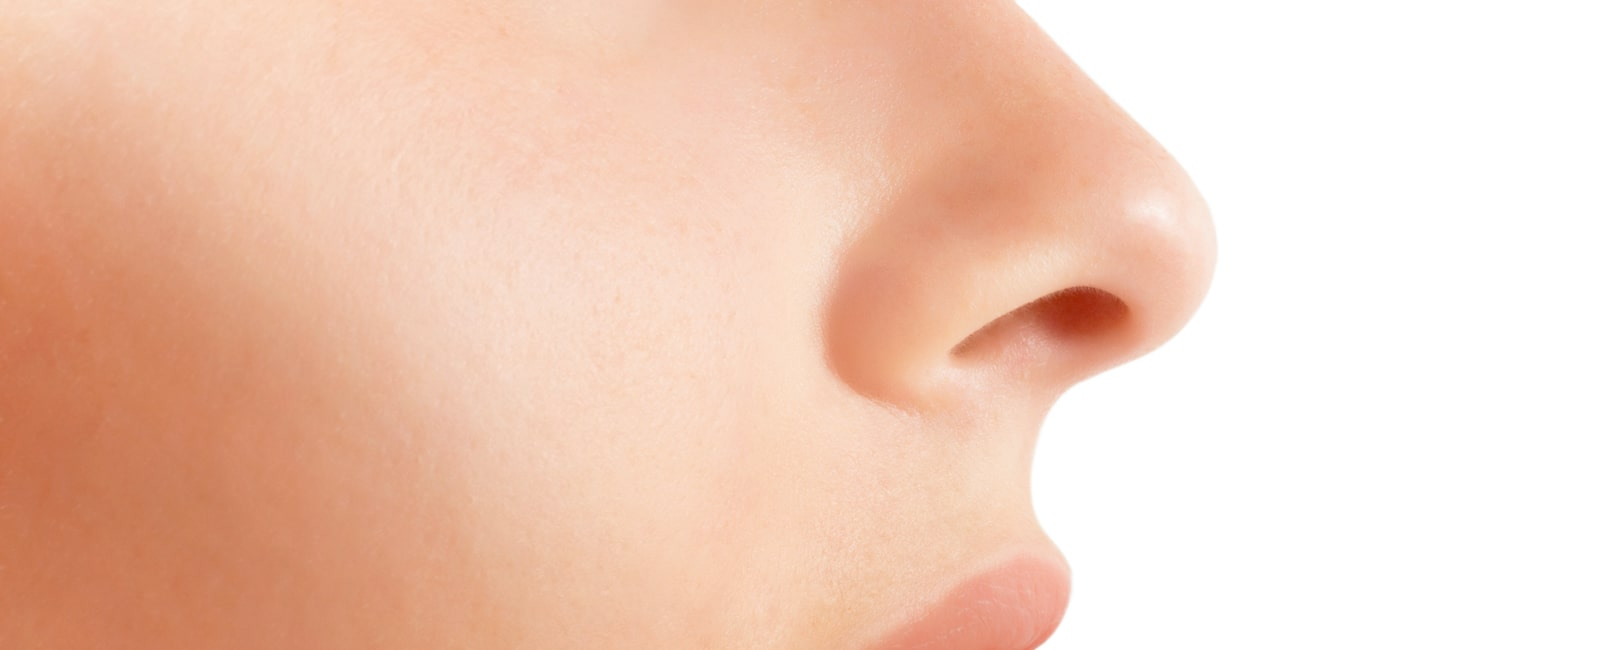 nasal flare muscle relaxant injections